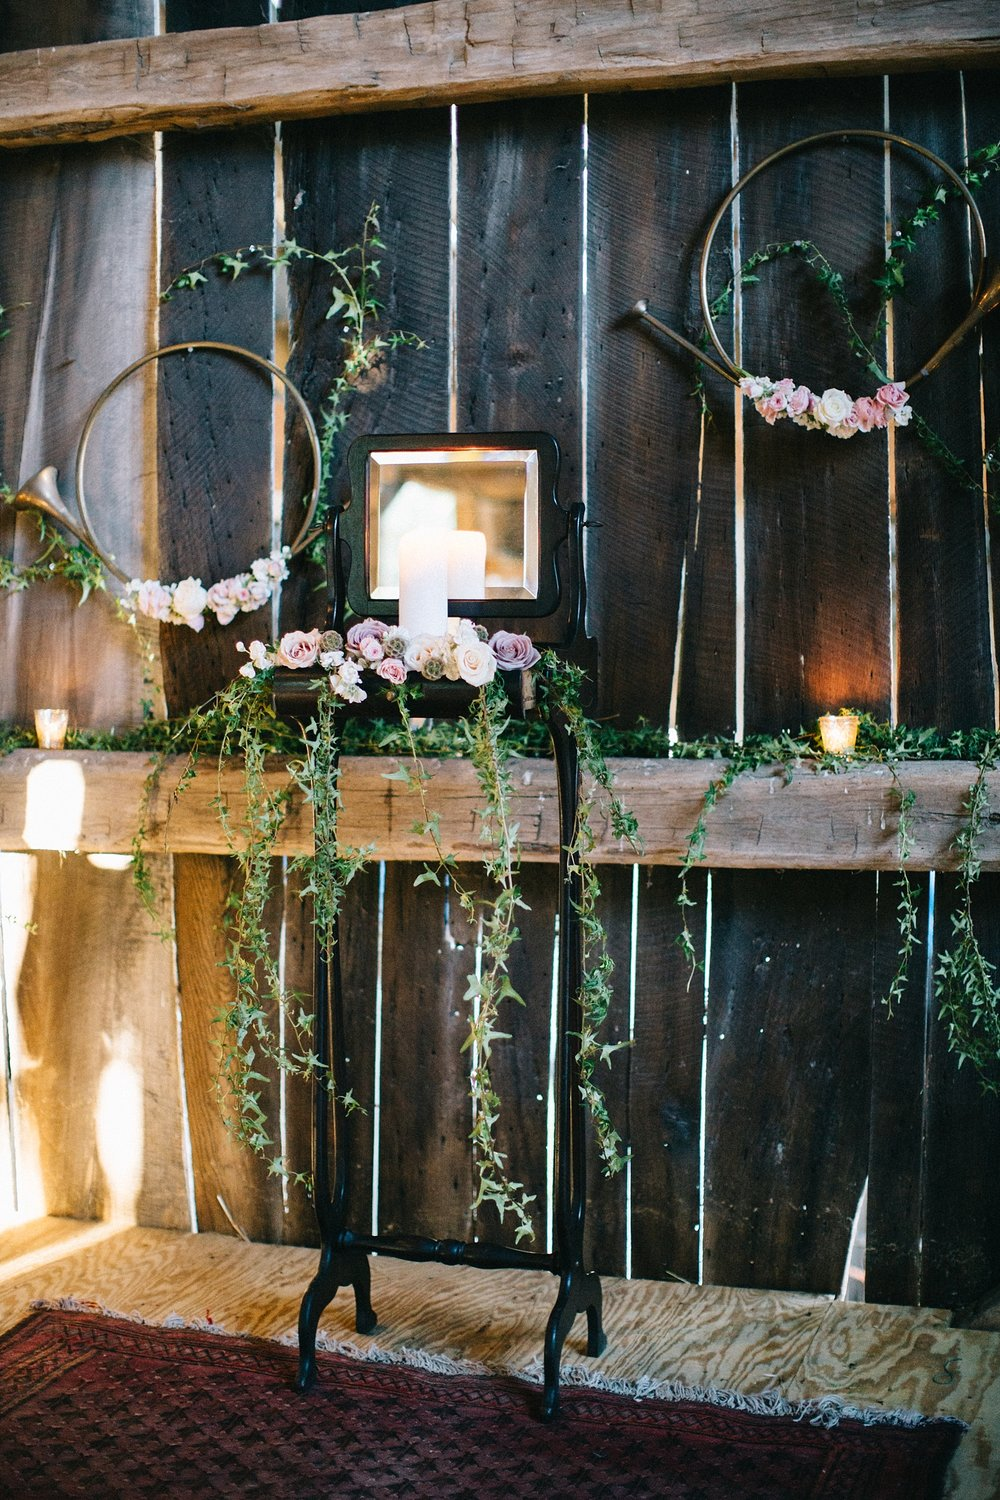 This shoot took place in the beautiful barn at White Horse Livery. With it's hand hewn beams, and light pouring in through the siding, Sapphire &Lace and Vintage Vogue Event Rentals kept the design elements light and airy. Here we have an antique shaving stand acting as an alter with pink, blush, and lavender roses popping out of the drawer, combined with delicate flowing ivy cascading down the legs. The ceremony area felt dreamy. The addition of votive's in mercury glass added a glow that brought out the warmth in the wood.